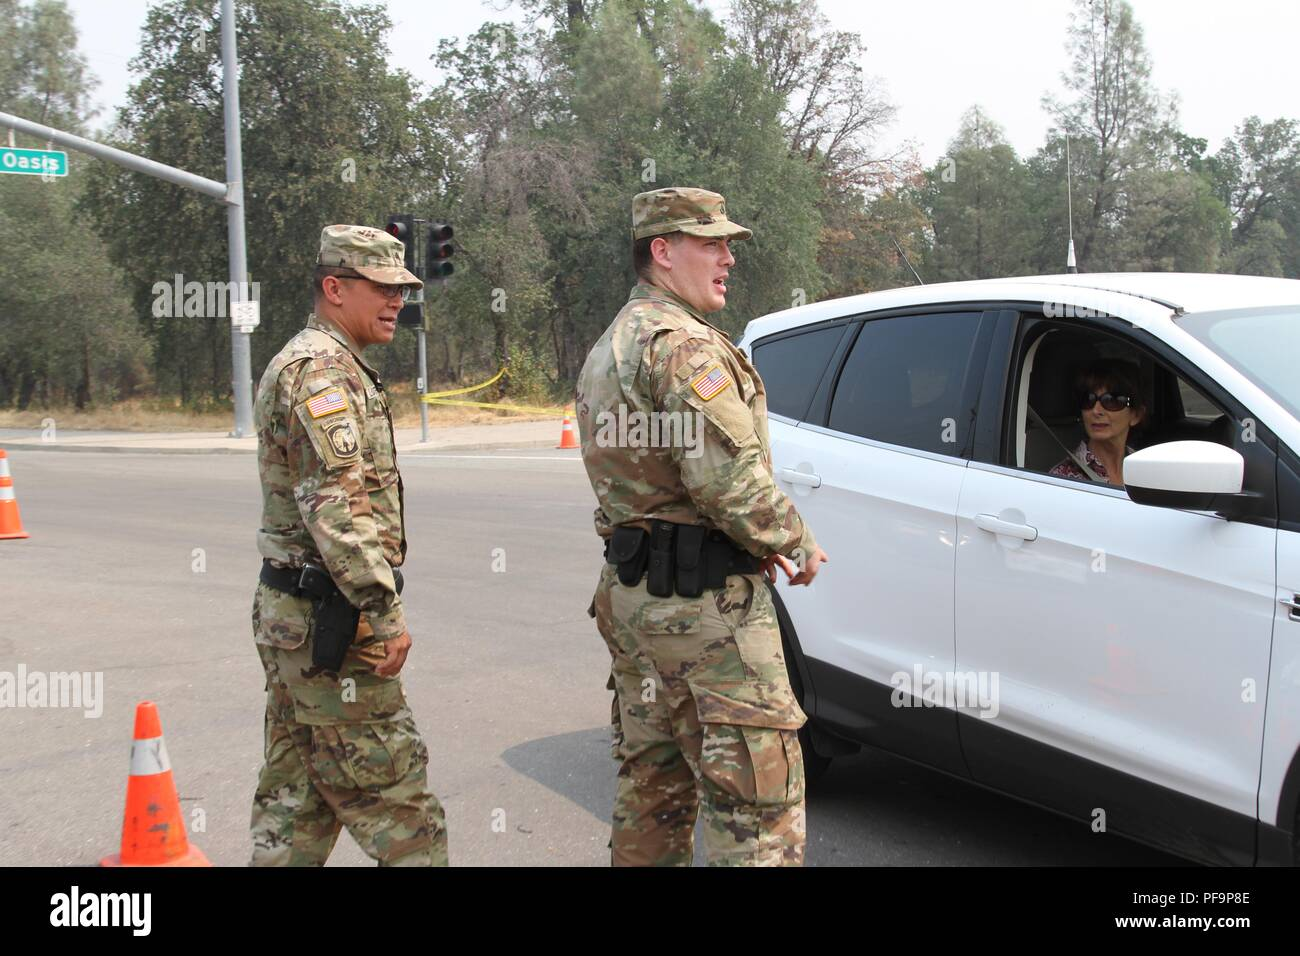 Military police from the California Army National Guard supported law enforcement late July in Redding, California, after the Carr Fire erupted and destroyed 500 structures and torched nearly 50, 000 acres within a week, July 29, 2018. Image courtesy Staff Sgt. Edward Siguenza/California National Guard. () - Stock Image